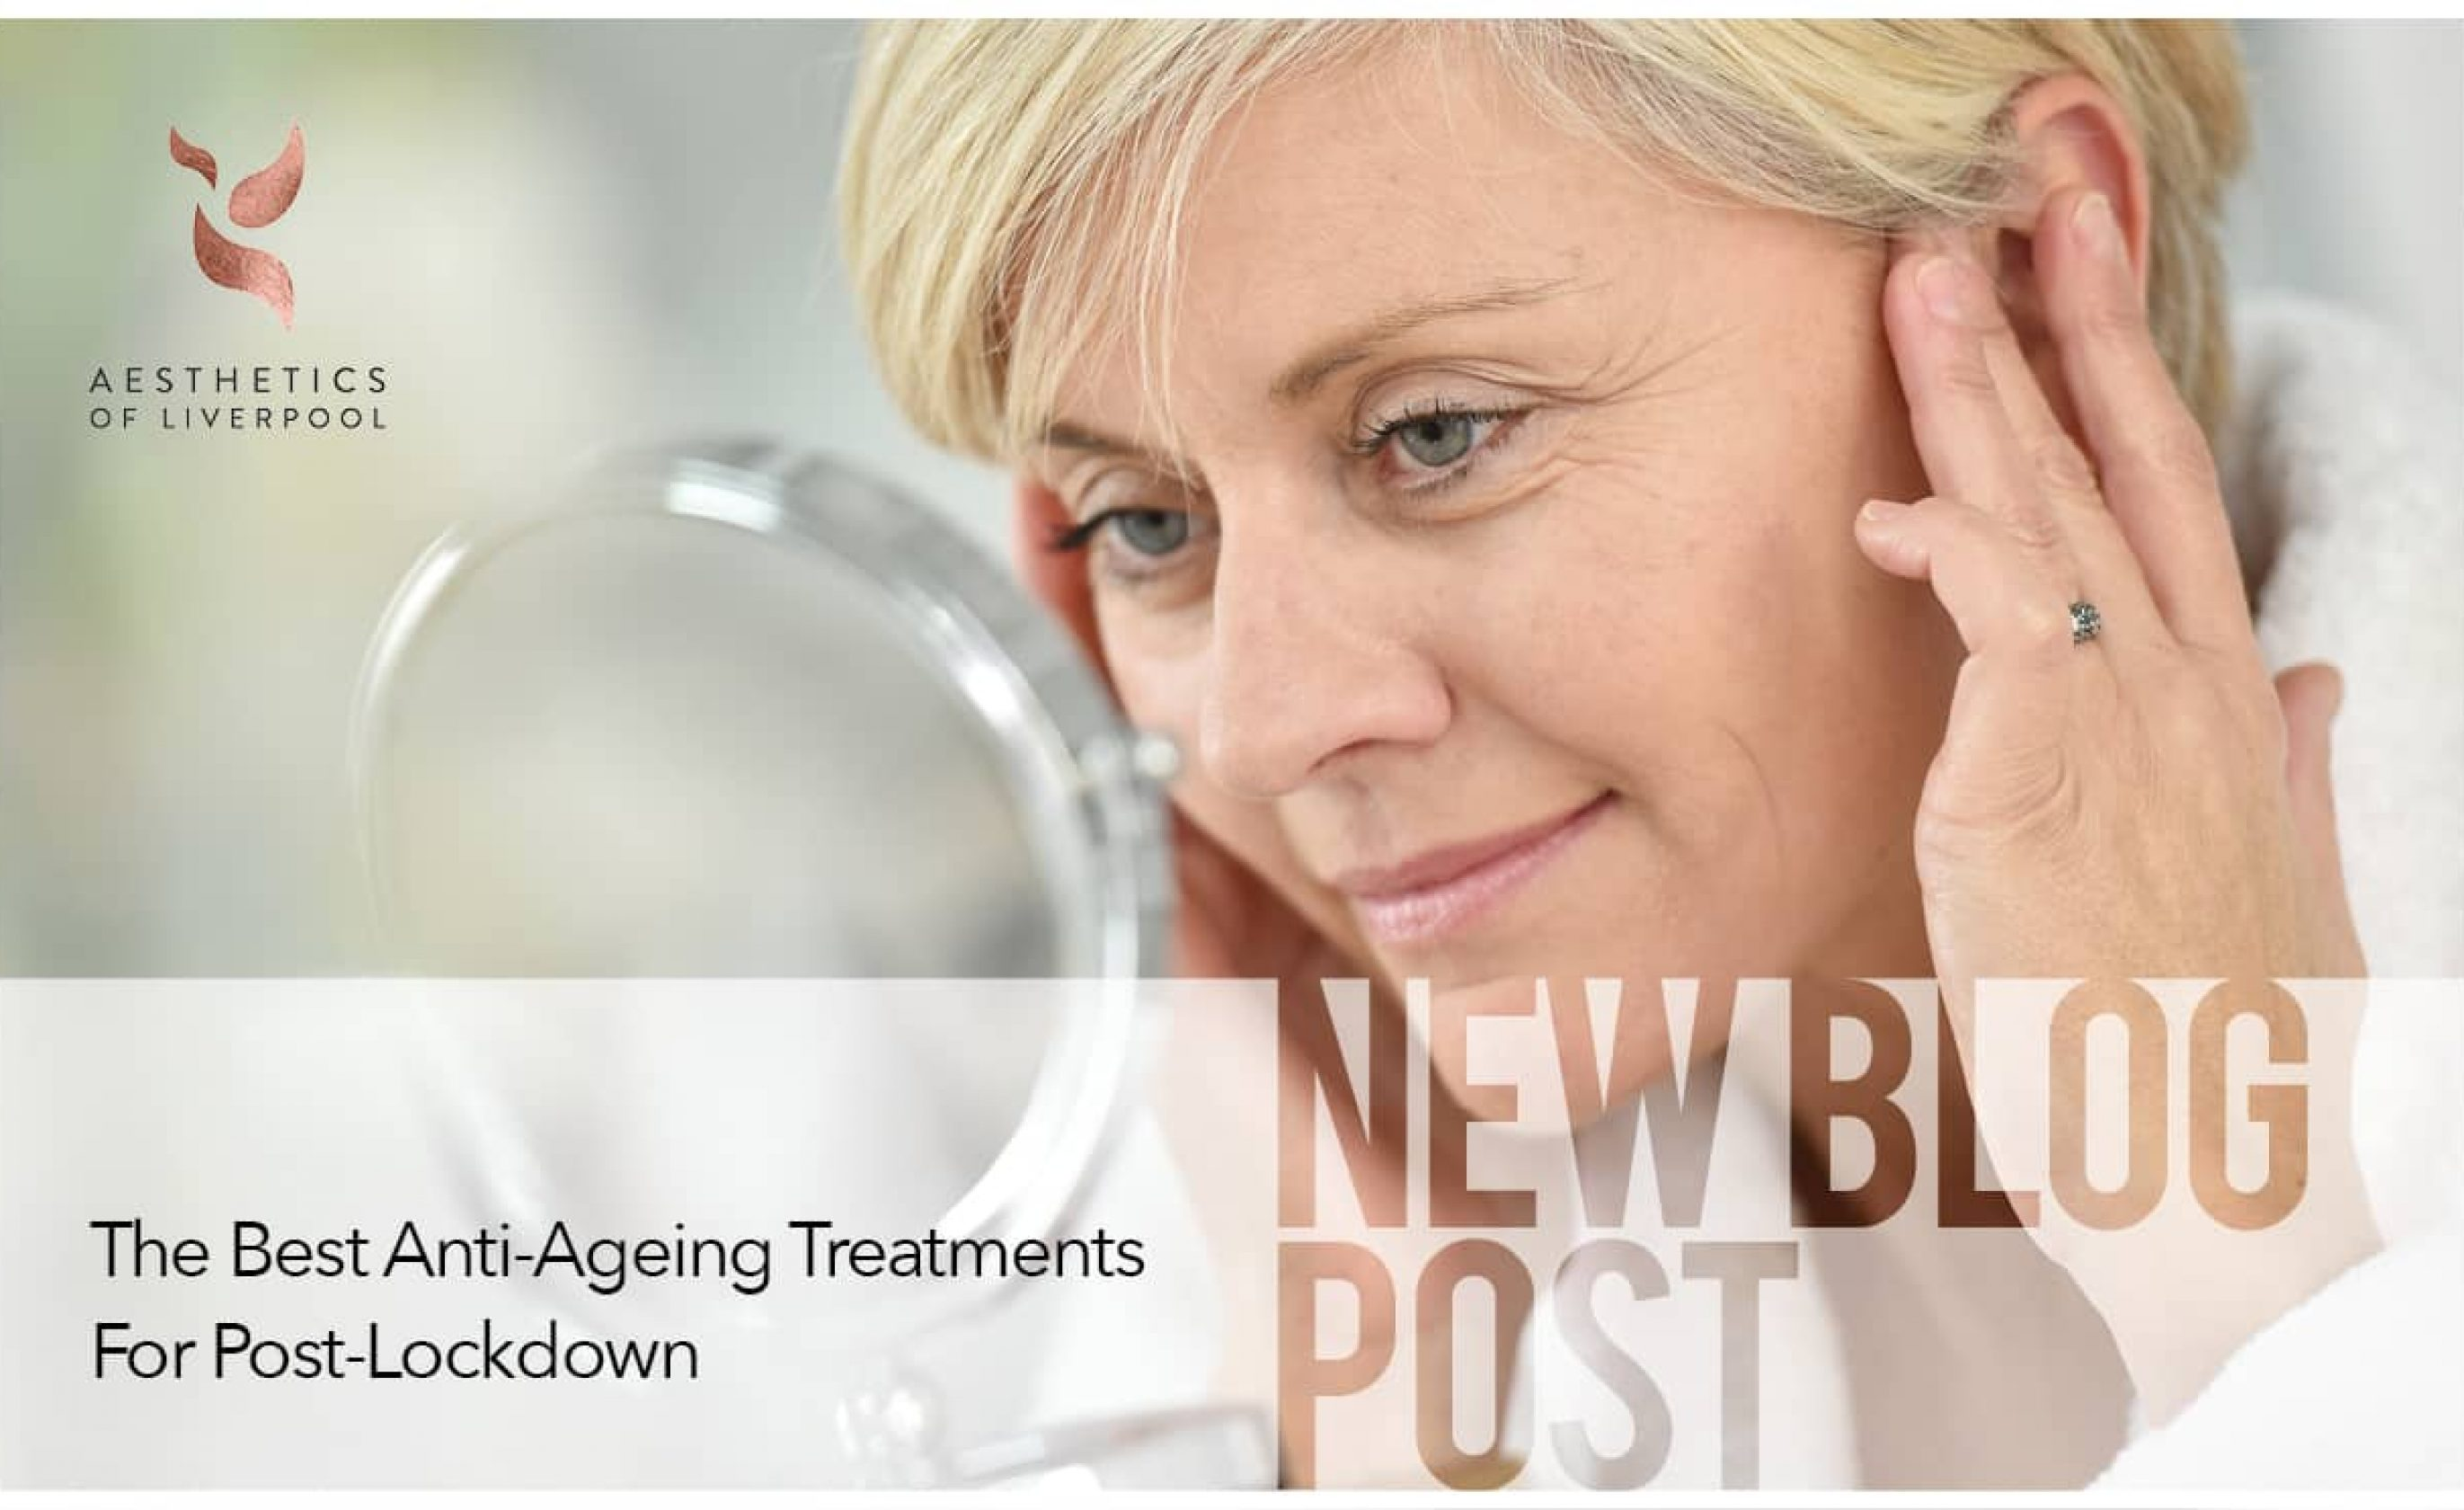 The Best Anti-Ageing Treatments For Post-Lockdown